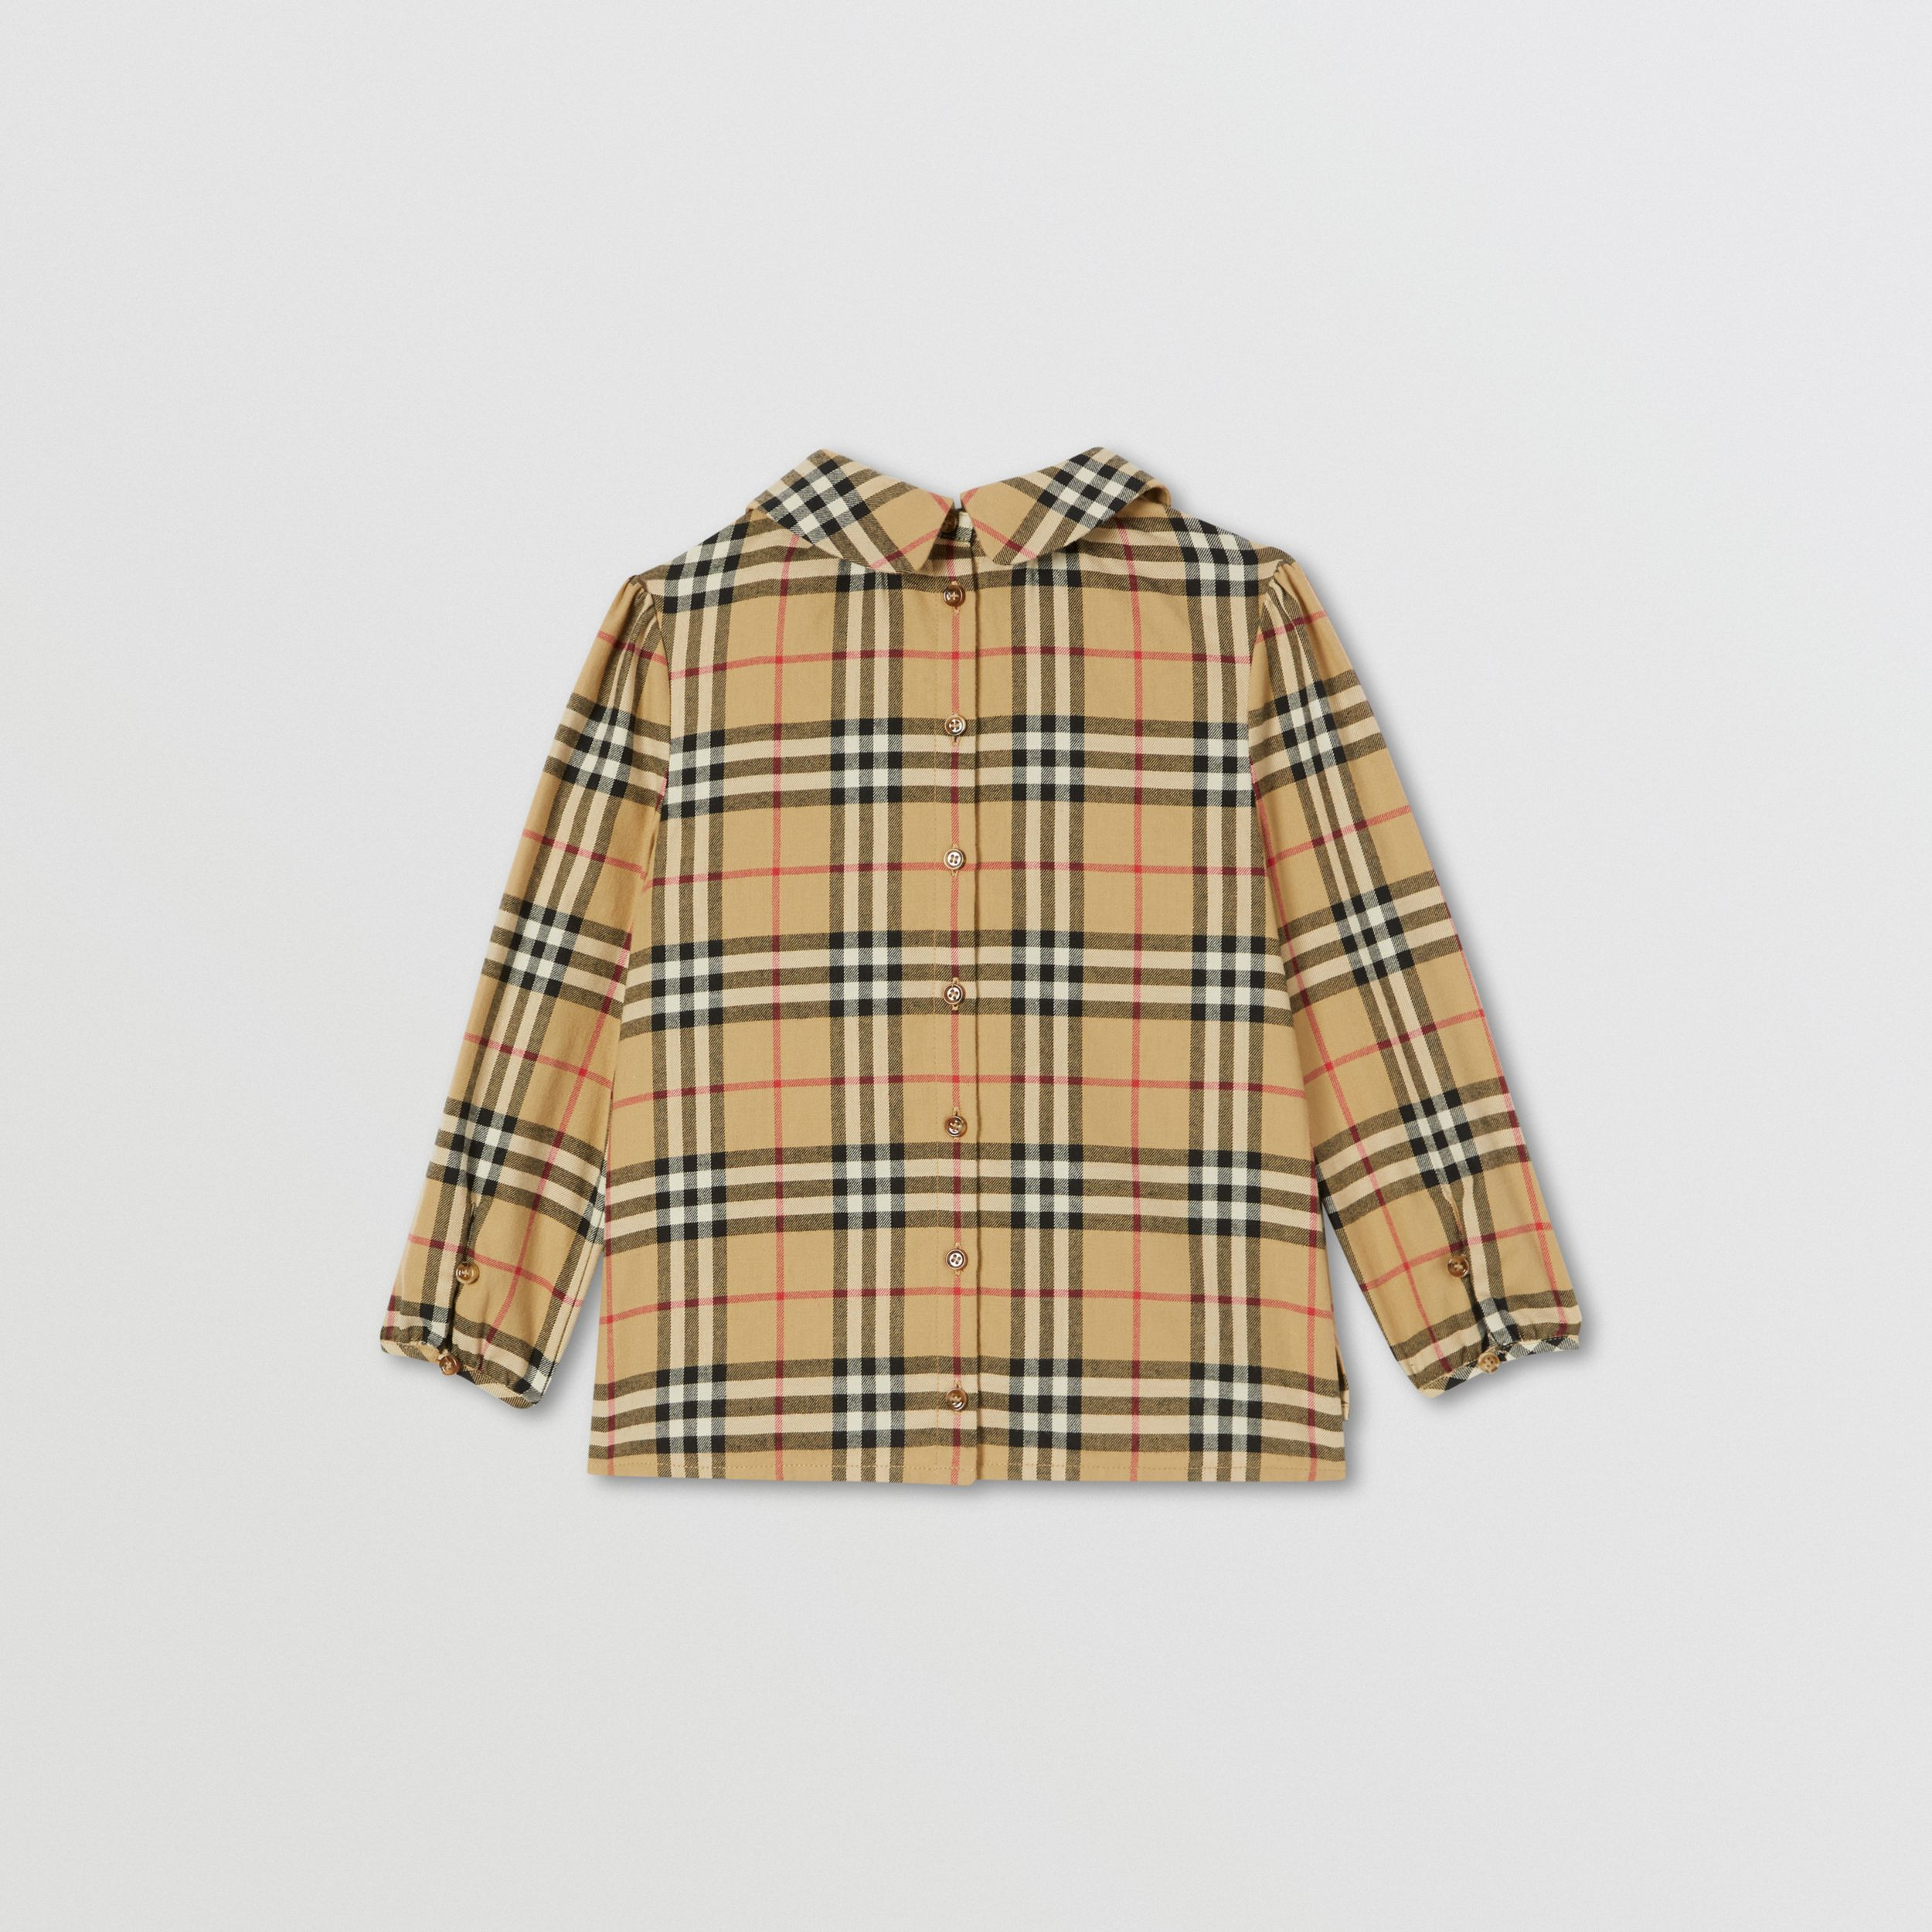 Peter Pan Collar Vintage Check Cotton Blouse | Burberry Australia - 4